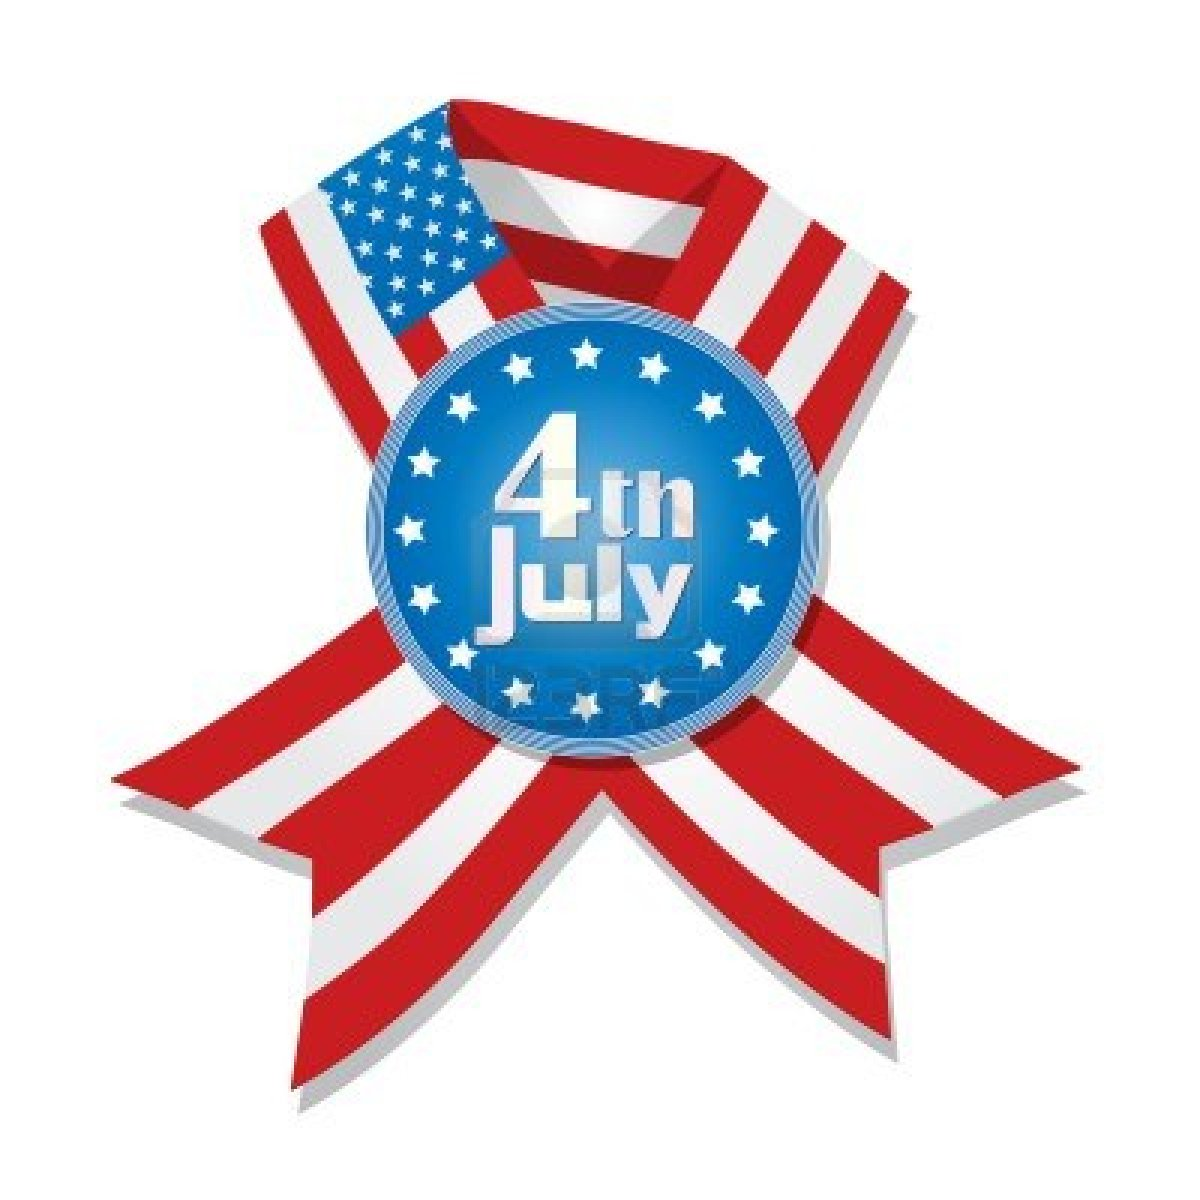 July 4th Eagle Clip Art and Images.